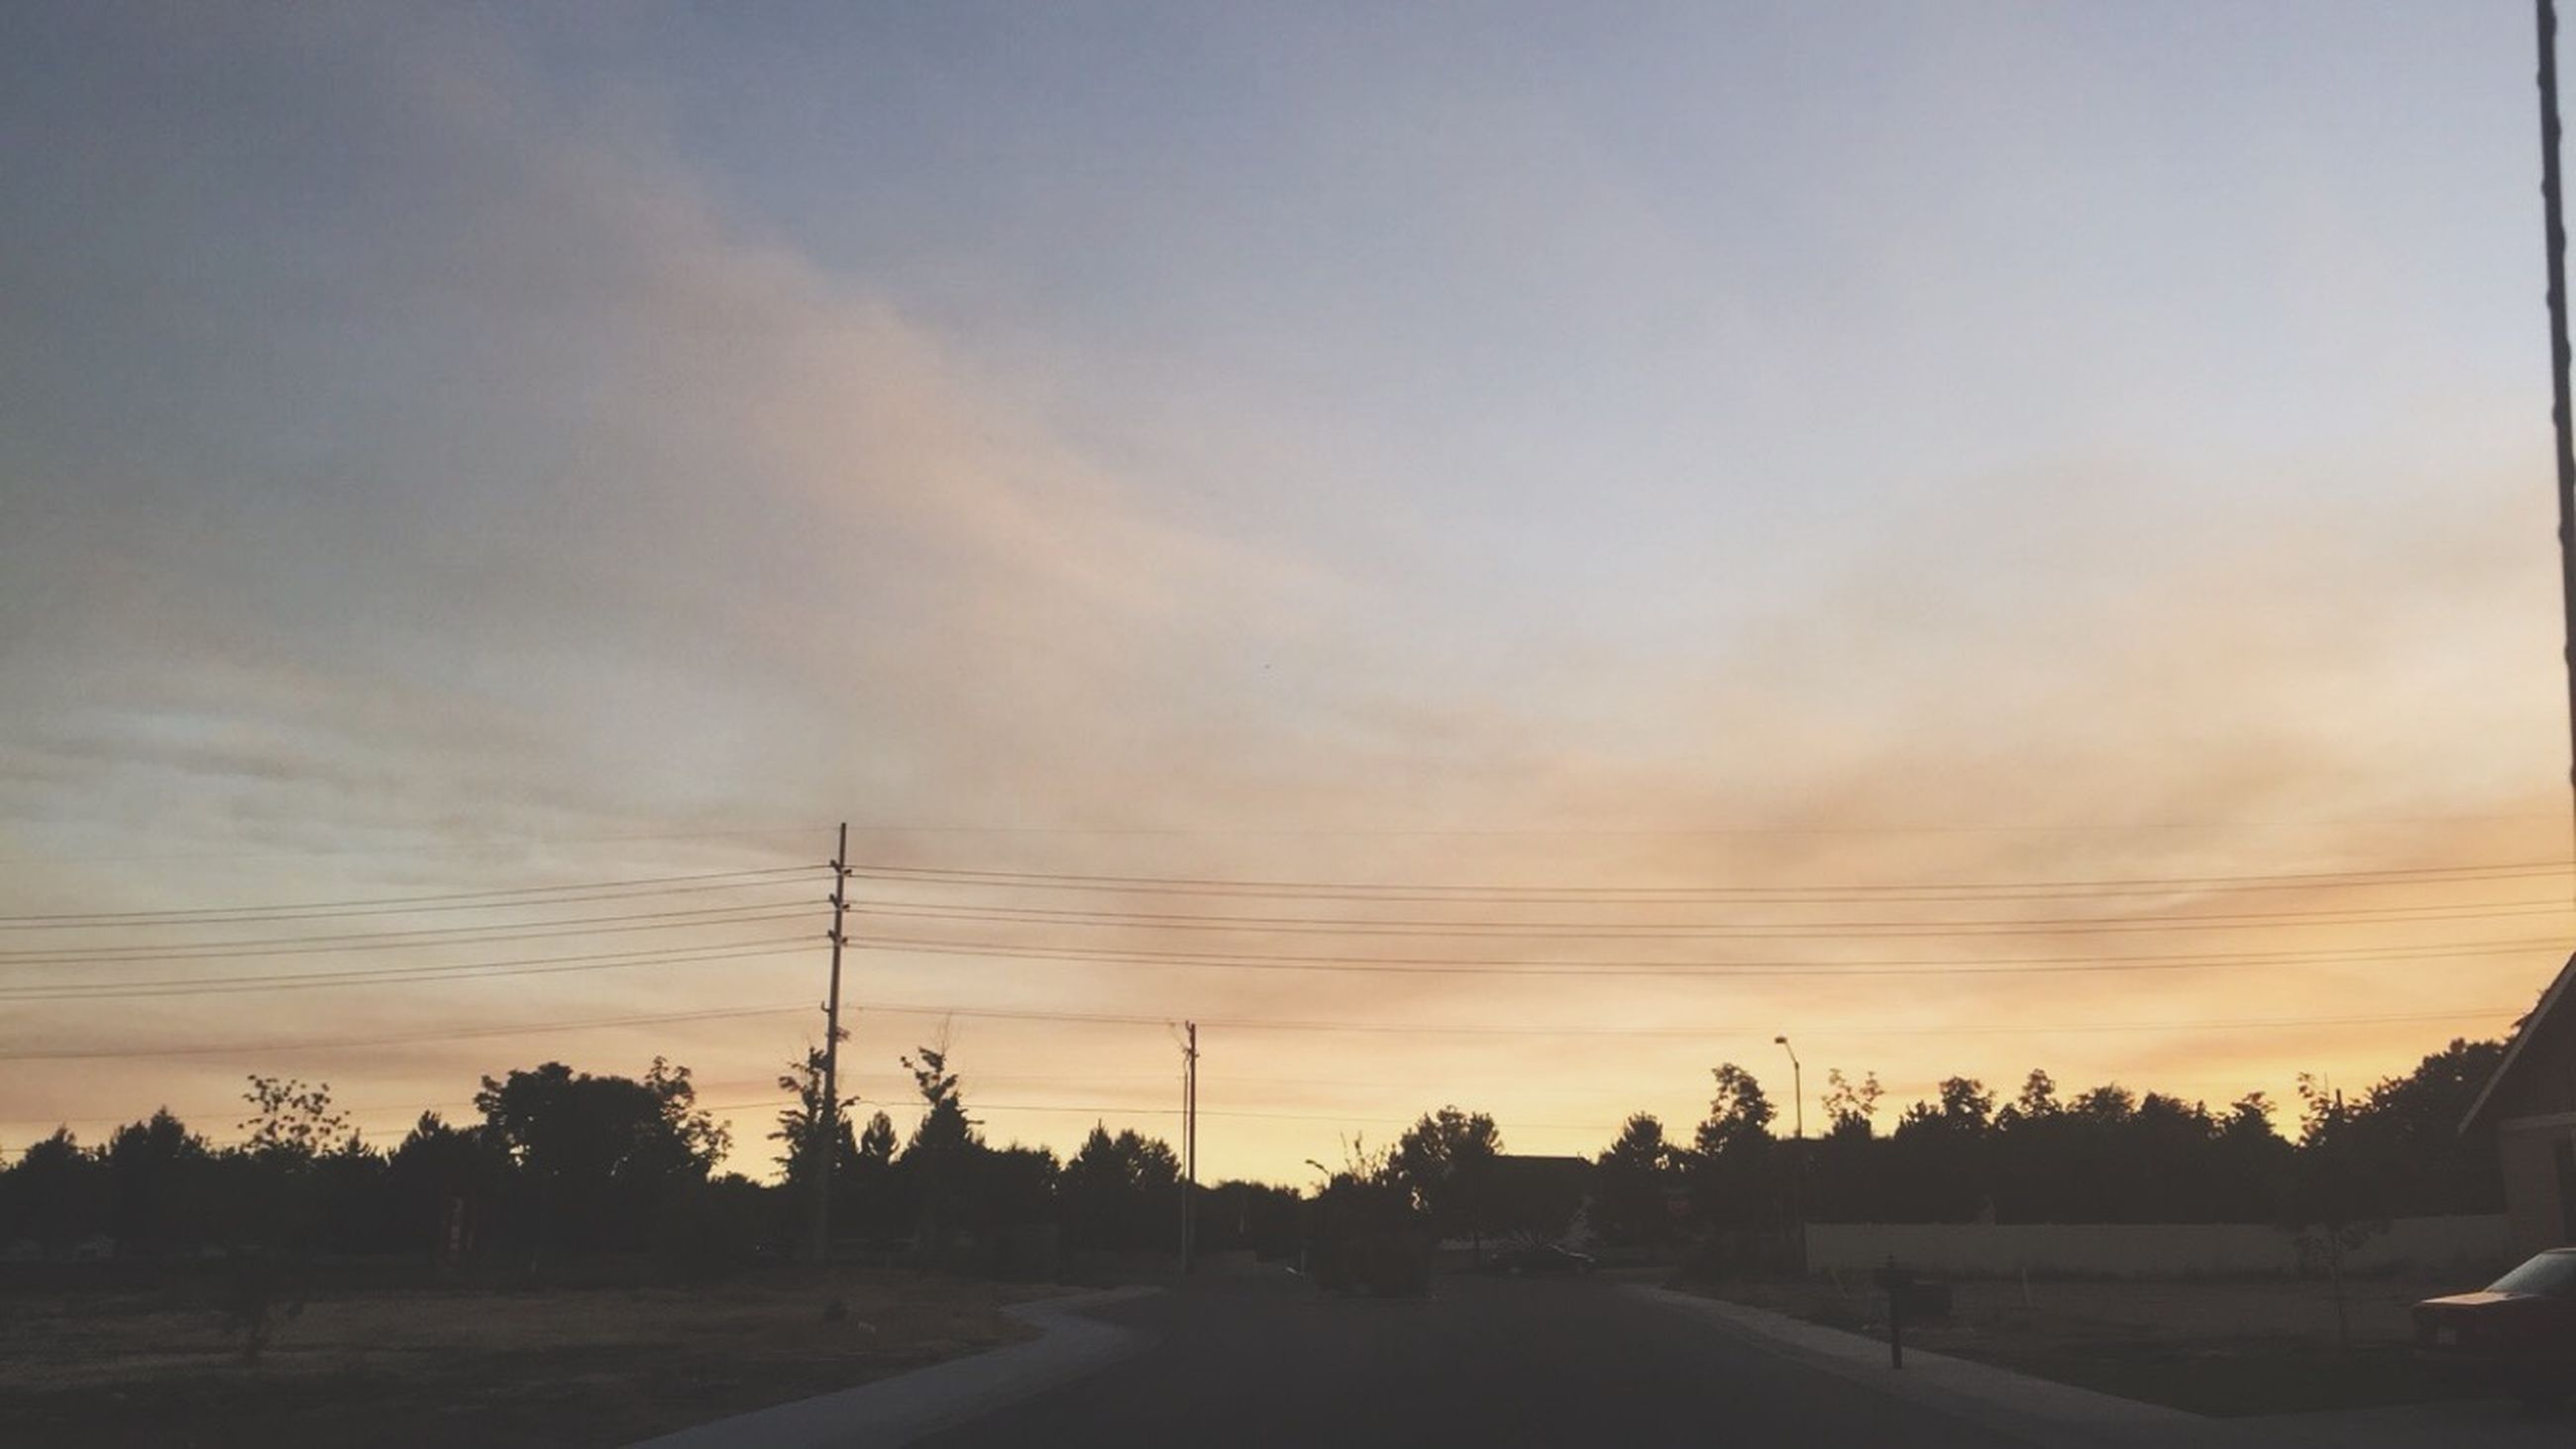 sunset, sky, power line, electricity pylon, silhouette, tree, tranquil scene, tranquility, road, landscape, electricity, scenics, orange color, cloud - sky, the way forward, nature, beauty in nature, connection, cloud, power supply